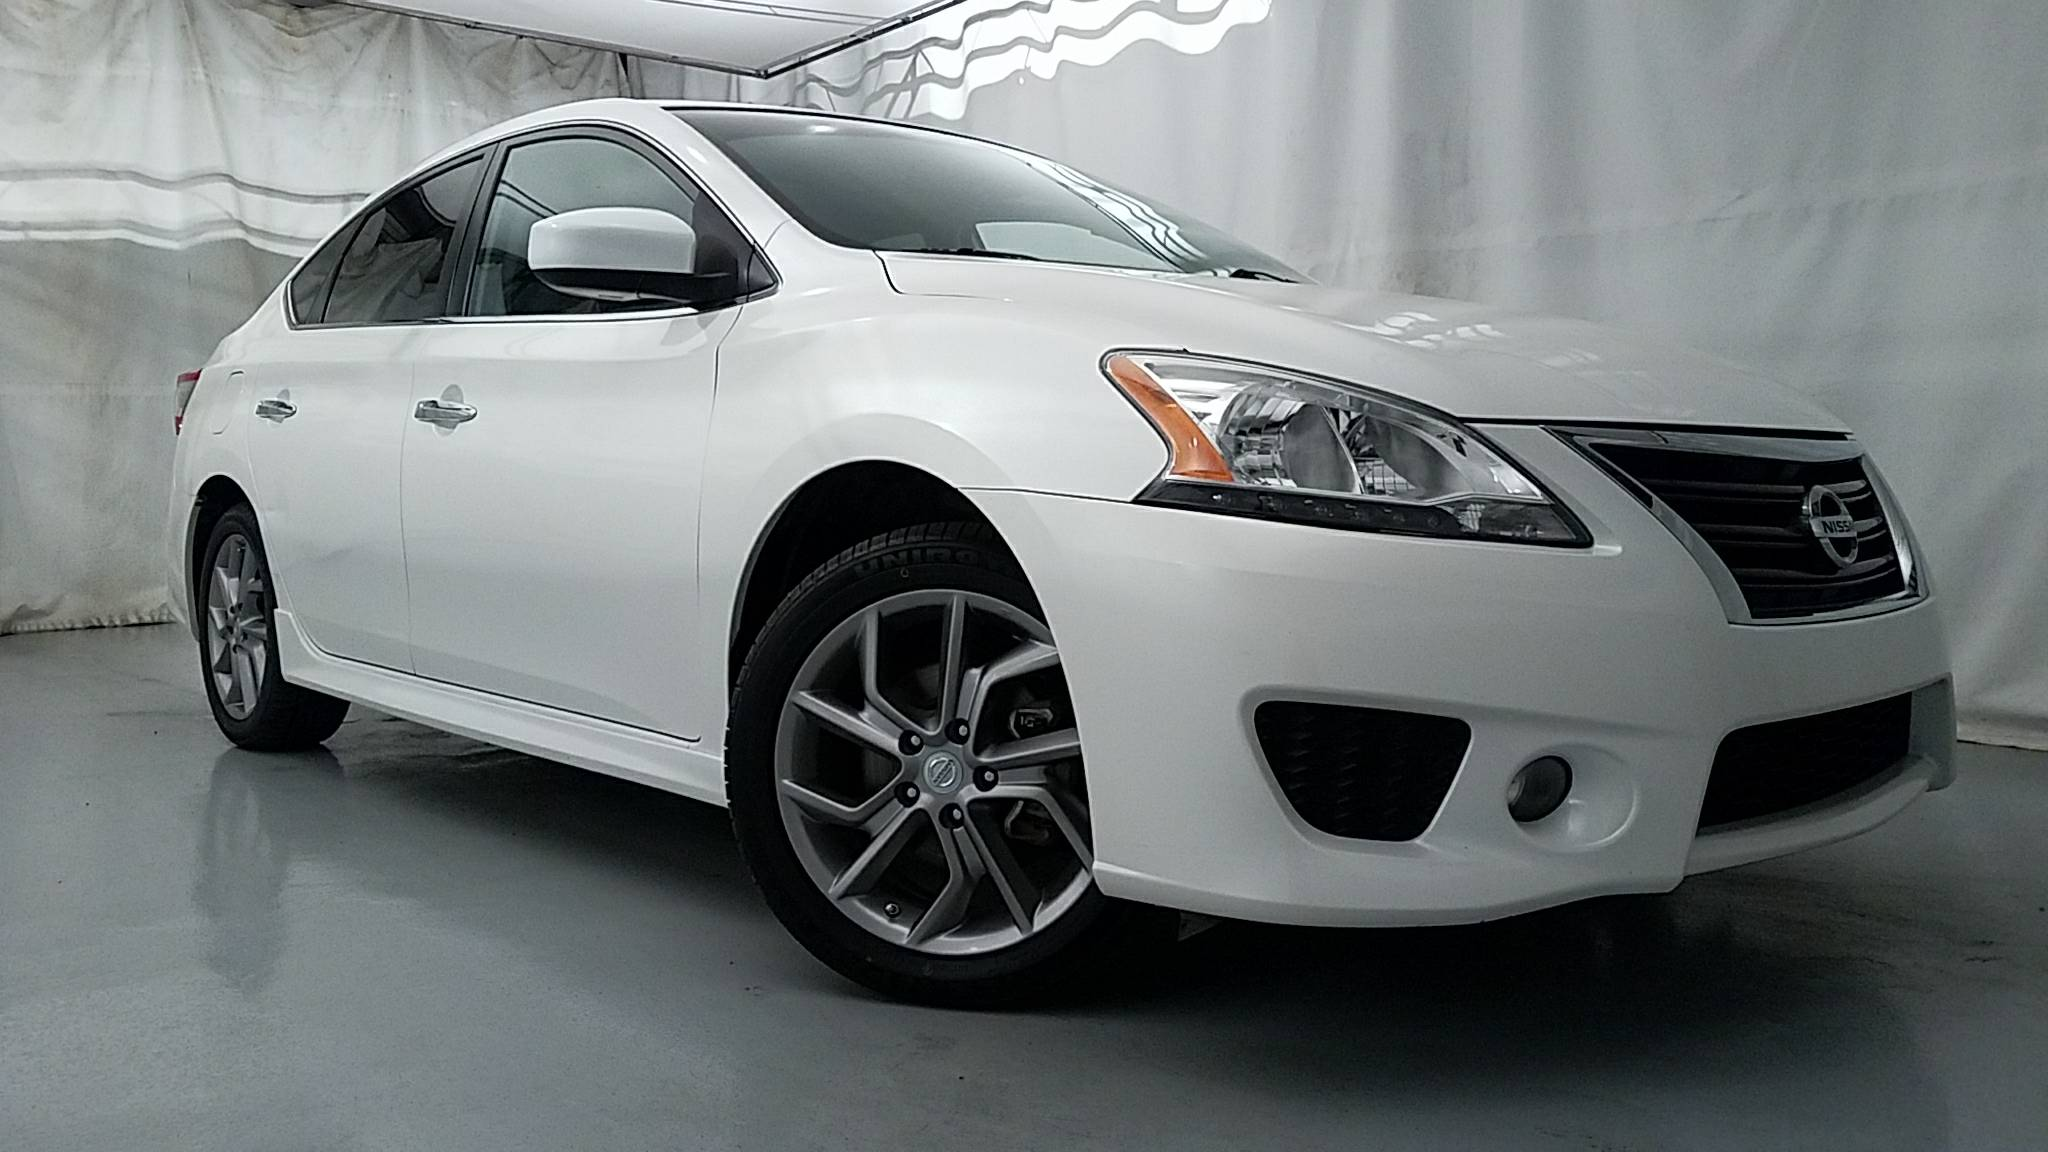 Used Nissan Sentra Vehicles for Sale in Hammond LA